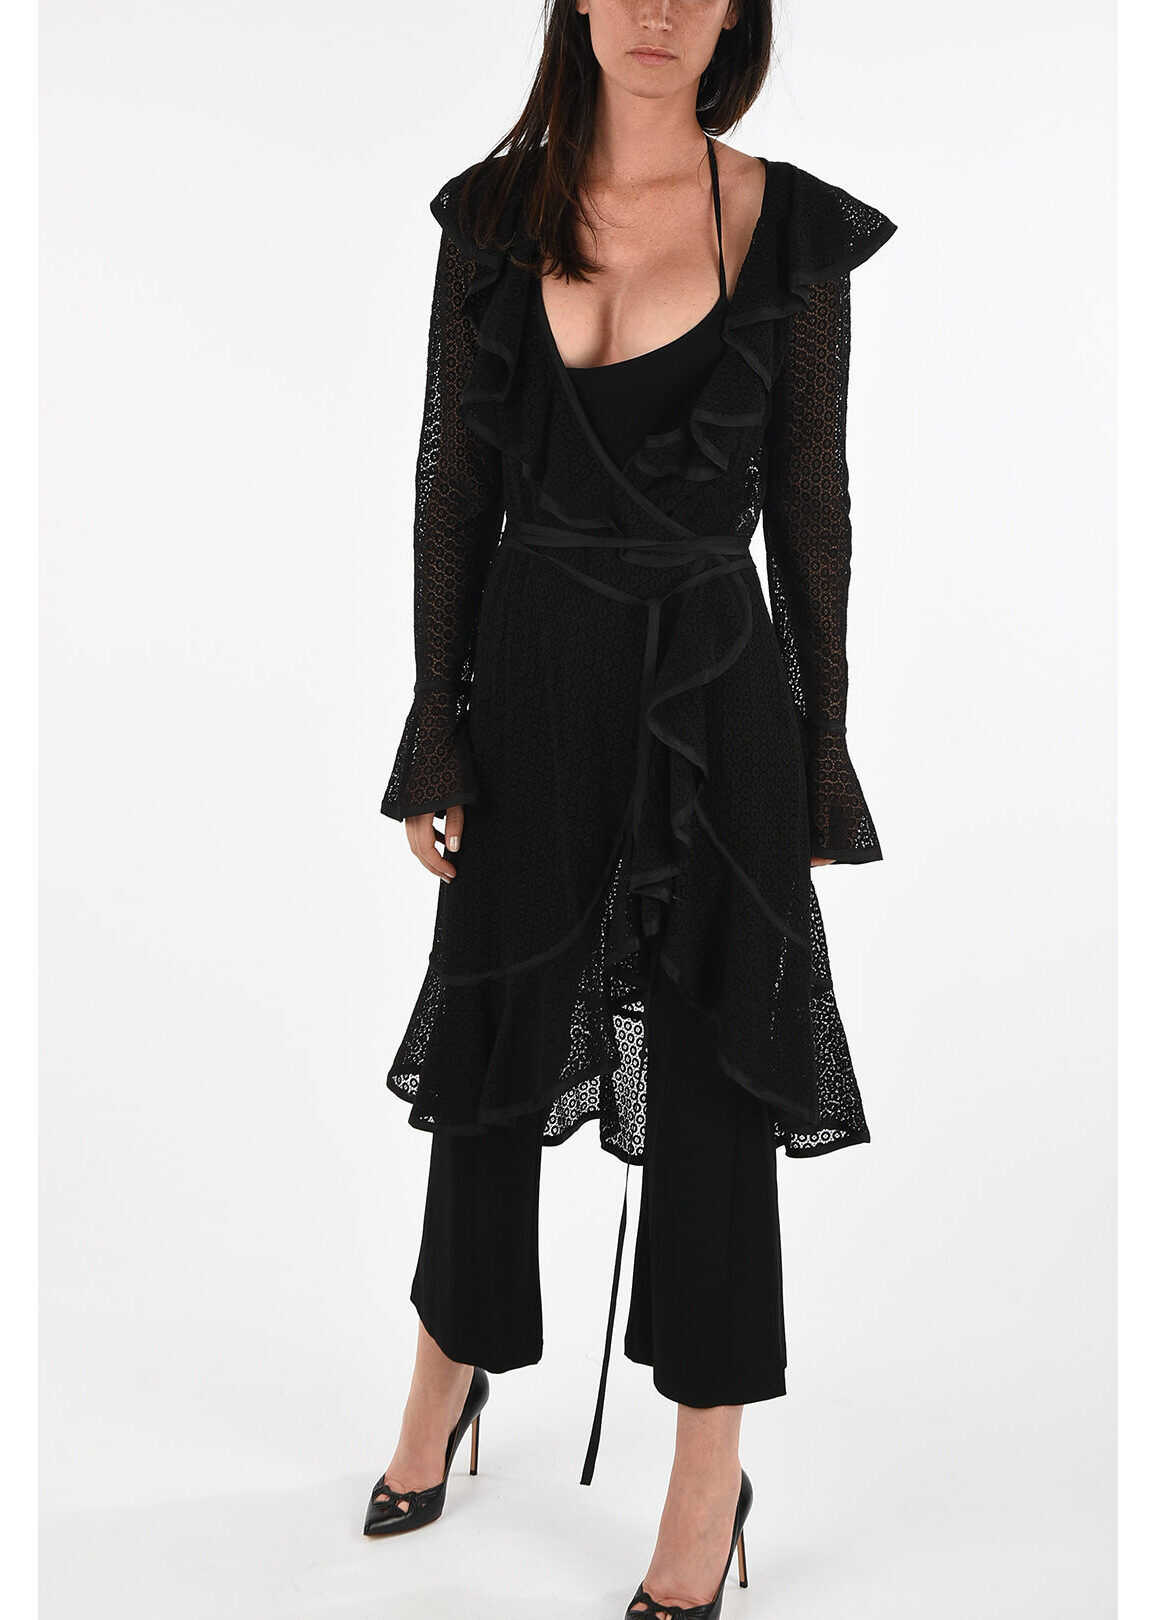 Marc Jacobs REDUX GRUNGE Jumsuit with Lace Cardigan BLACK